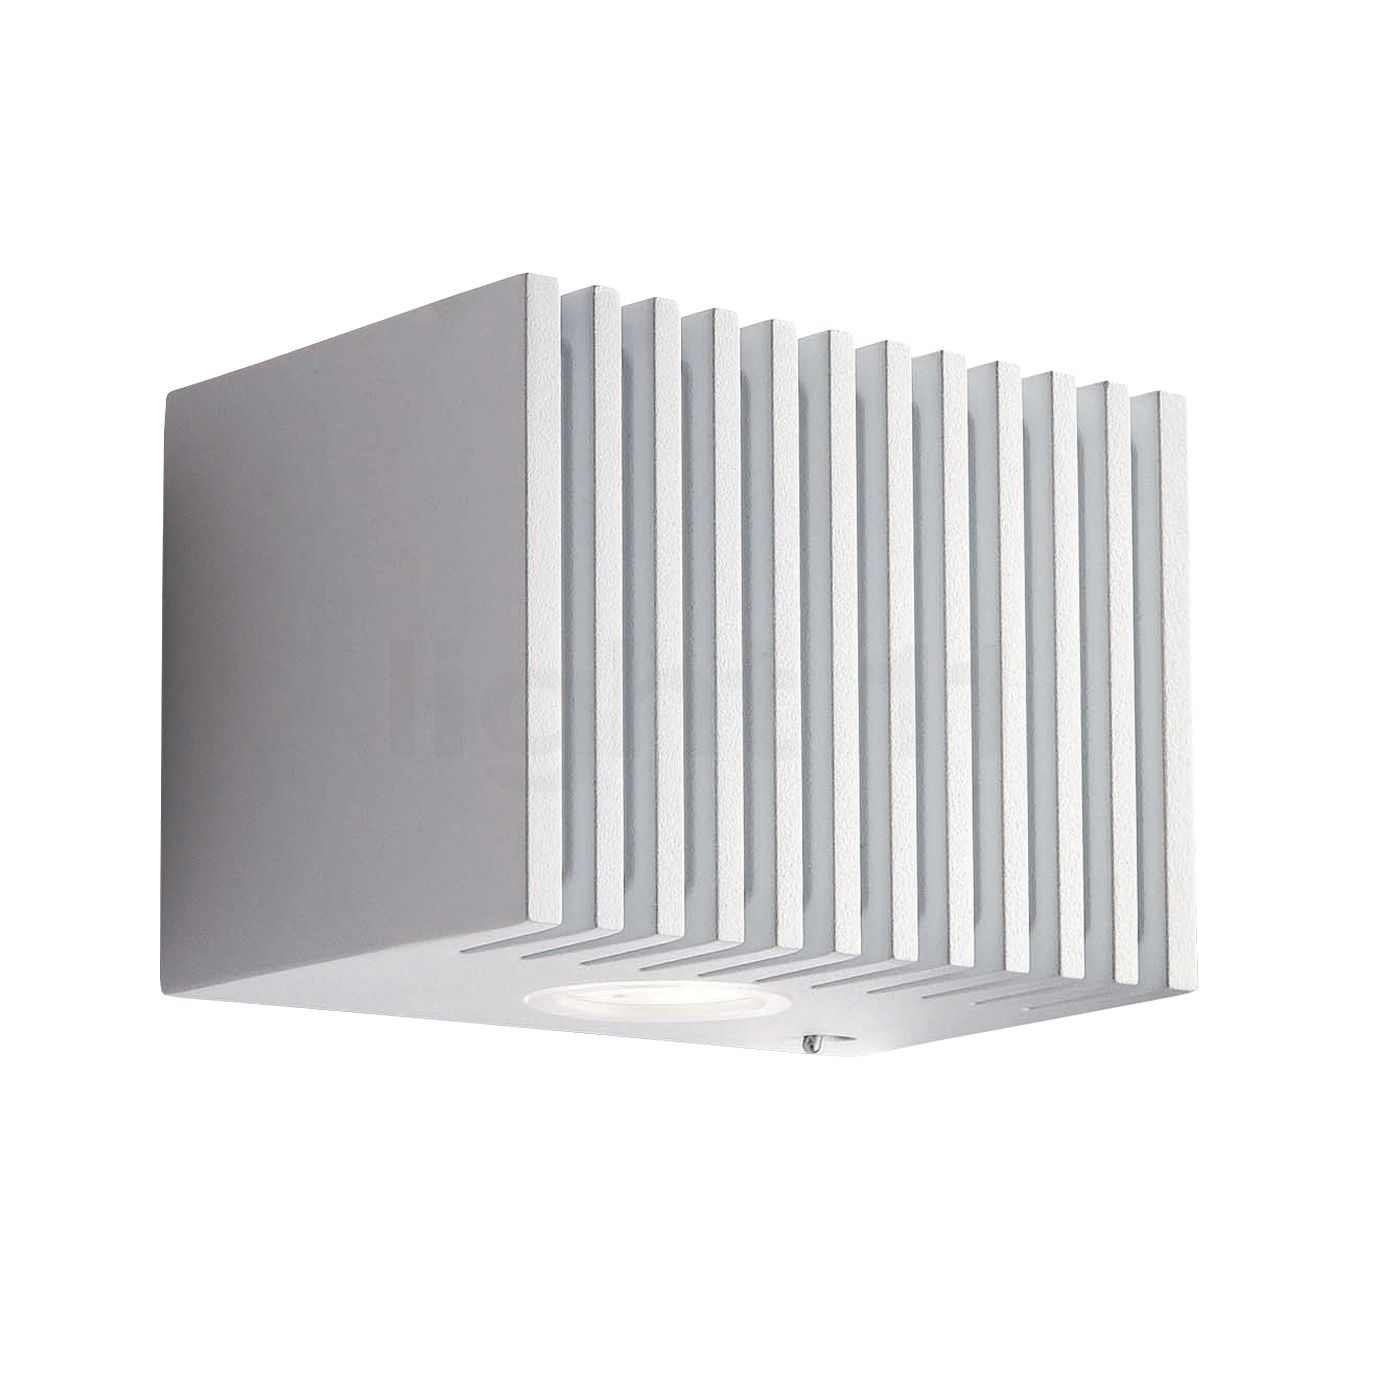 Philips row applique murale led en vente sur for Philips ledino applique murale exterieur